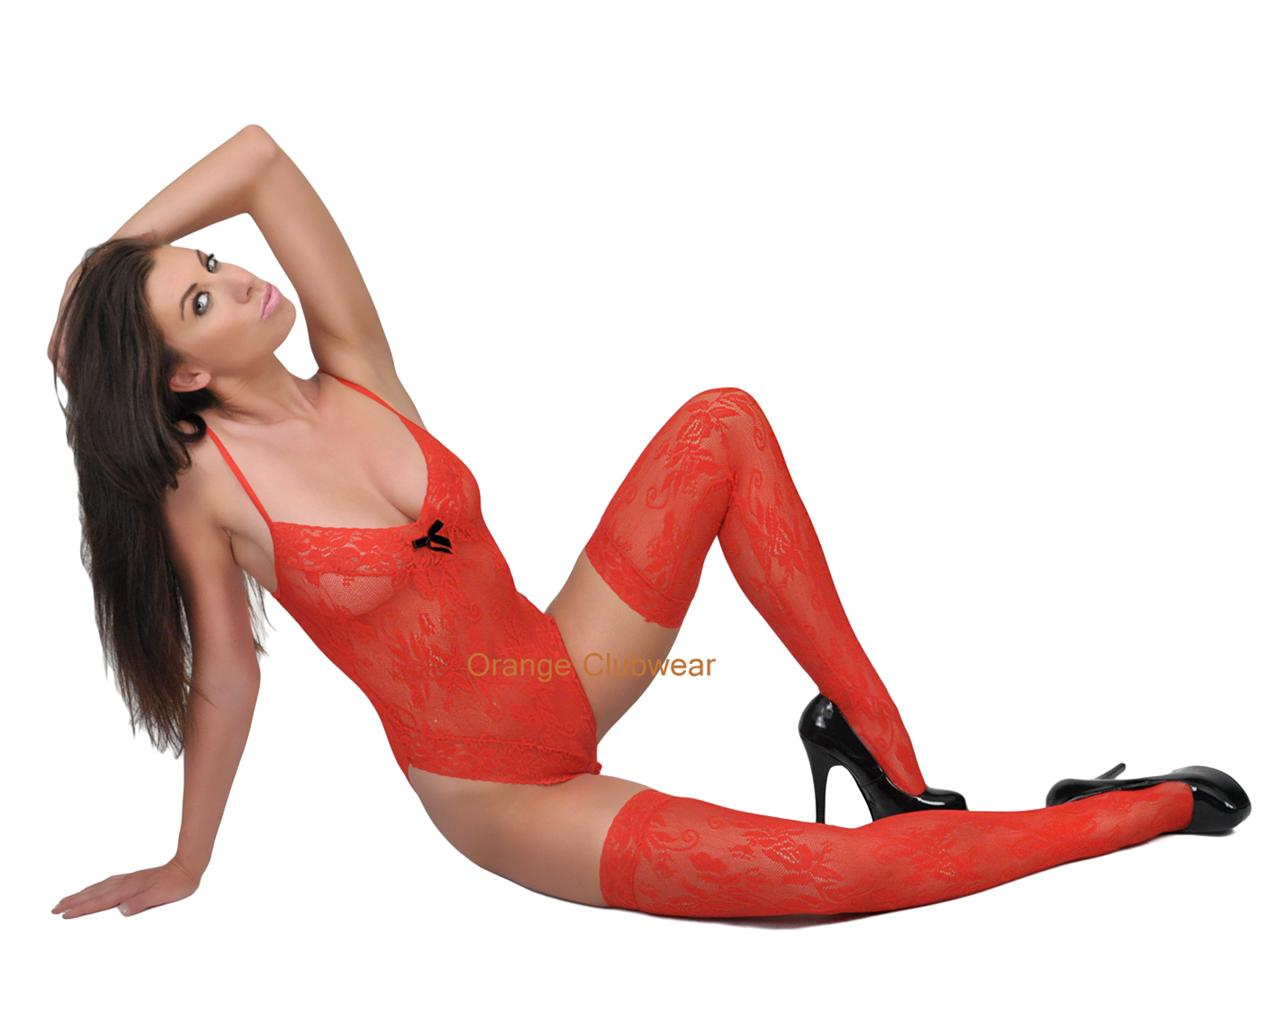 Leg Avenue Red Lace Teddy Snap Closure Thigh High Stocking Lingerie Outfit at Sears.com